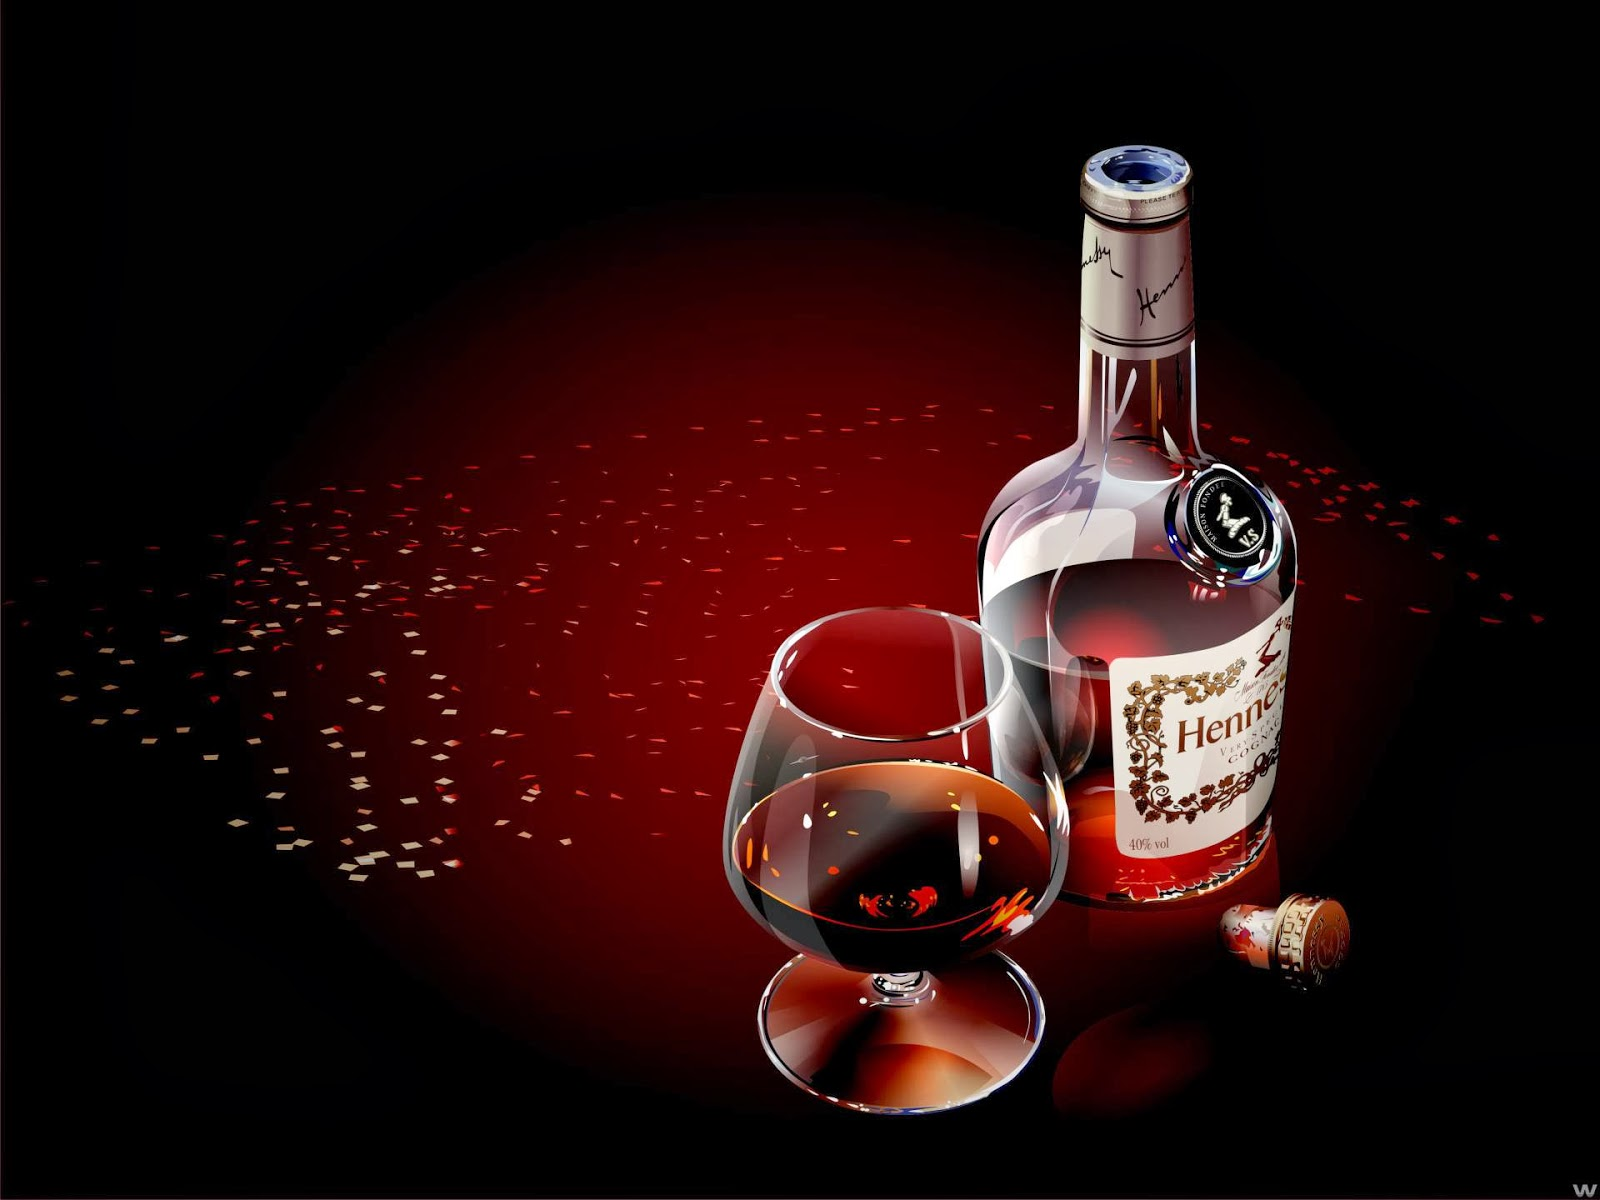 Secrets of Happiness Wine Bottle And Cigar WaLLpapers 1600x1200